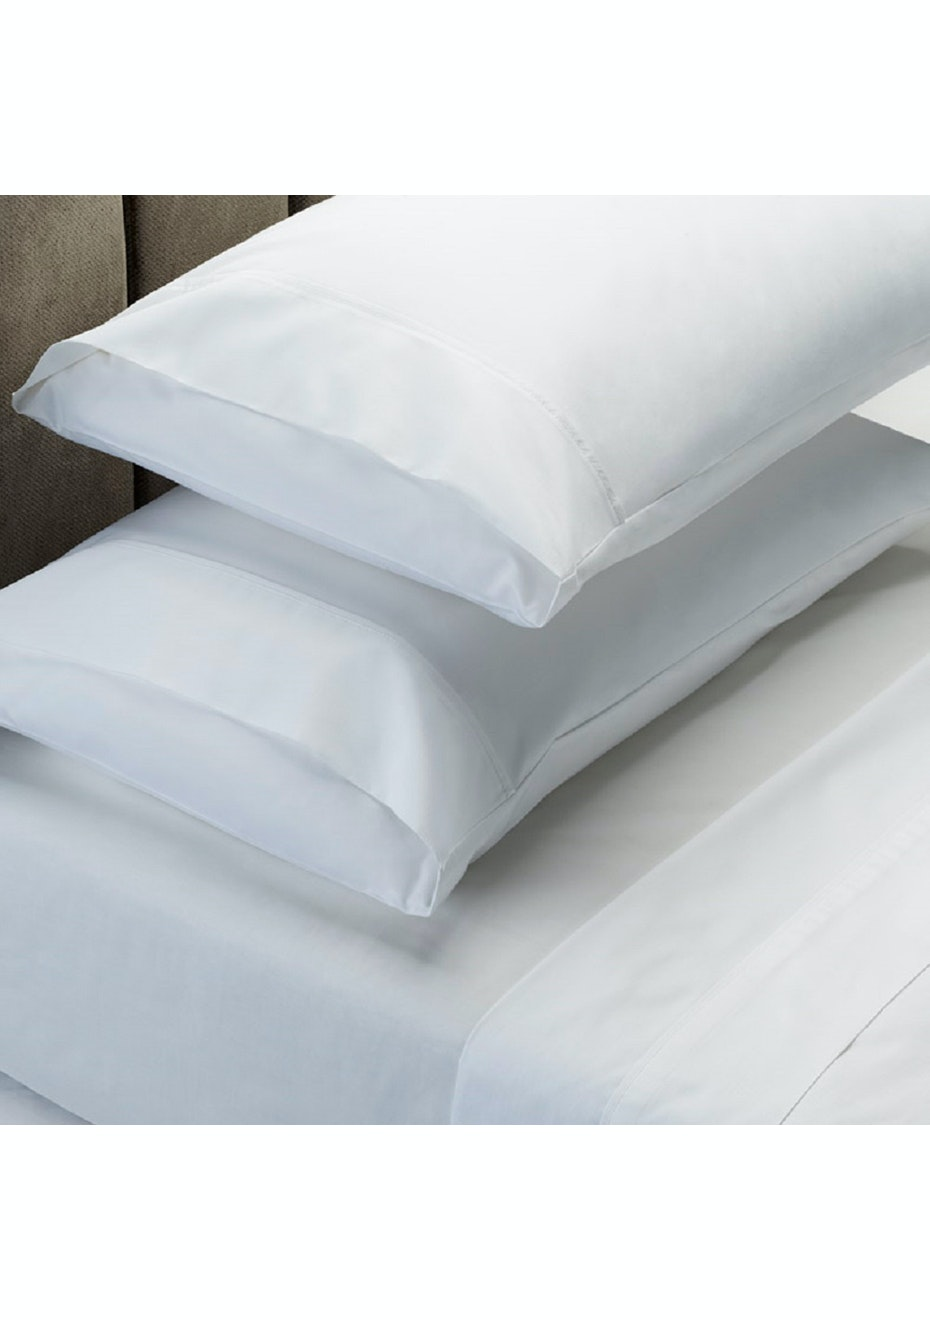 Park Avenue 1000 Thread count 100% Egyptian Cotton Sheet sets Queen - White